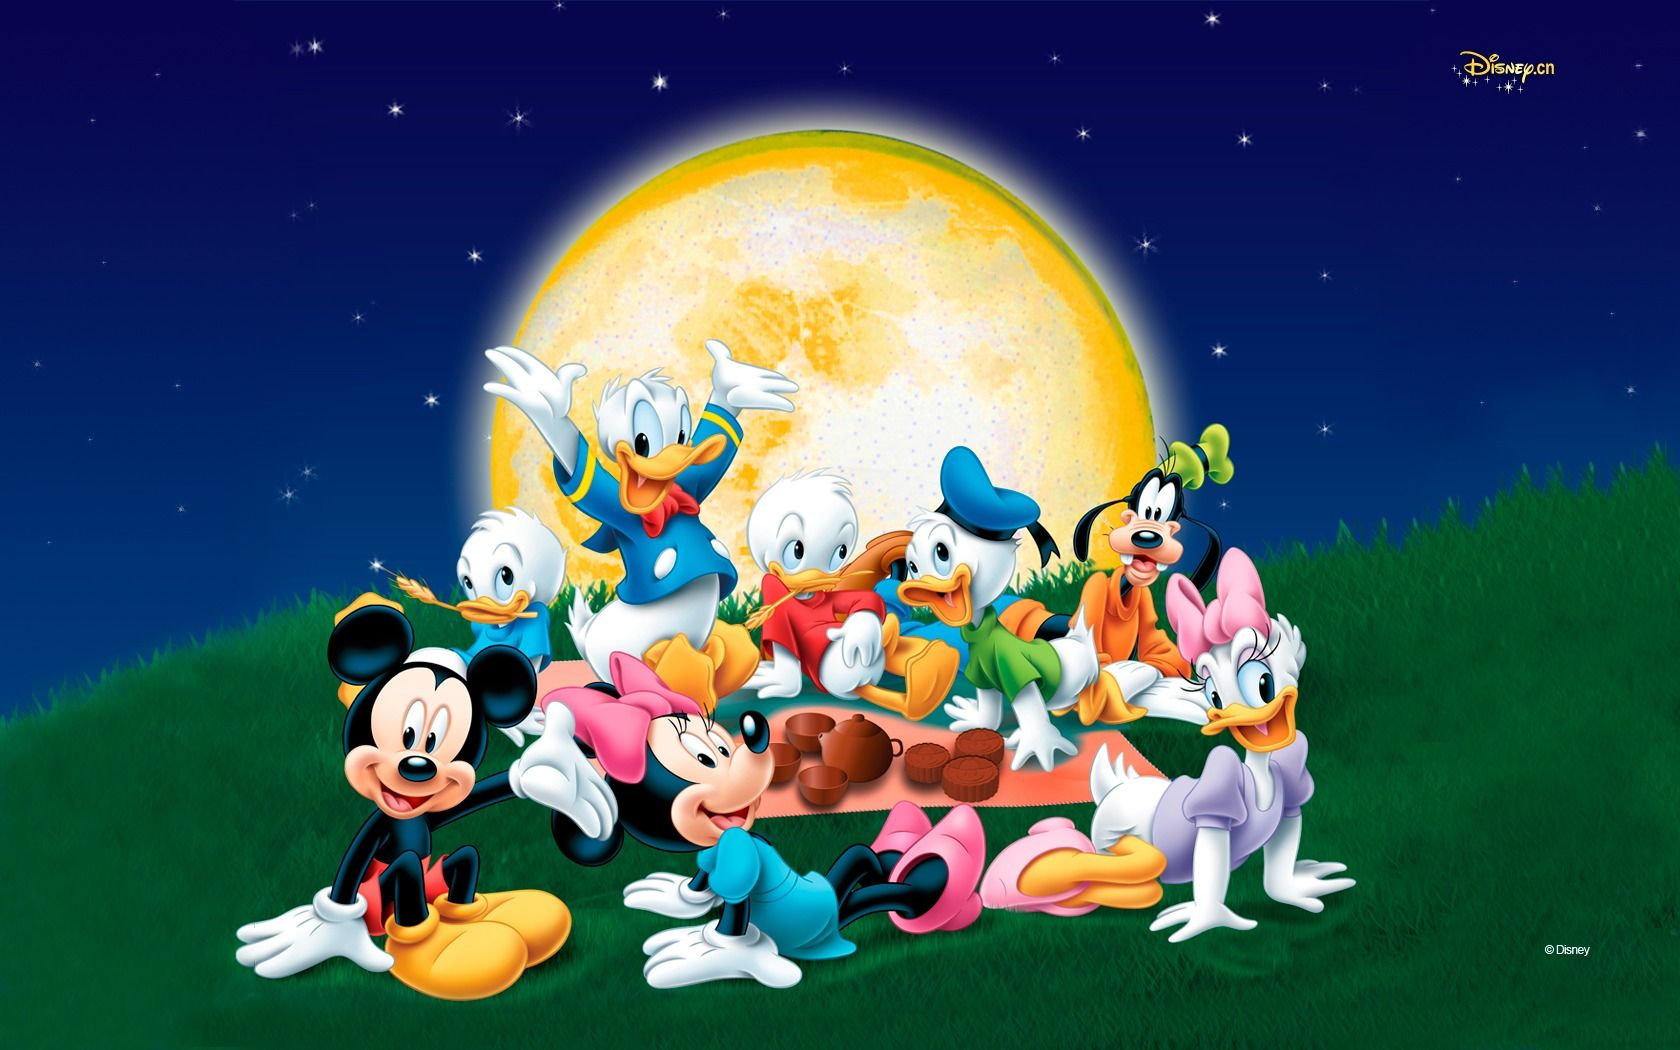 Minnie Mouse Disney Wallpapers Top Free Minnie Mouse Disney